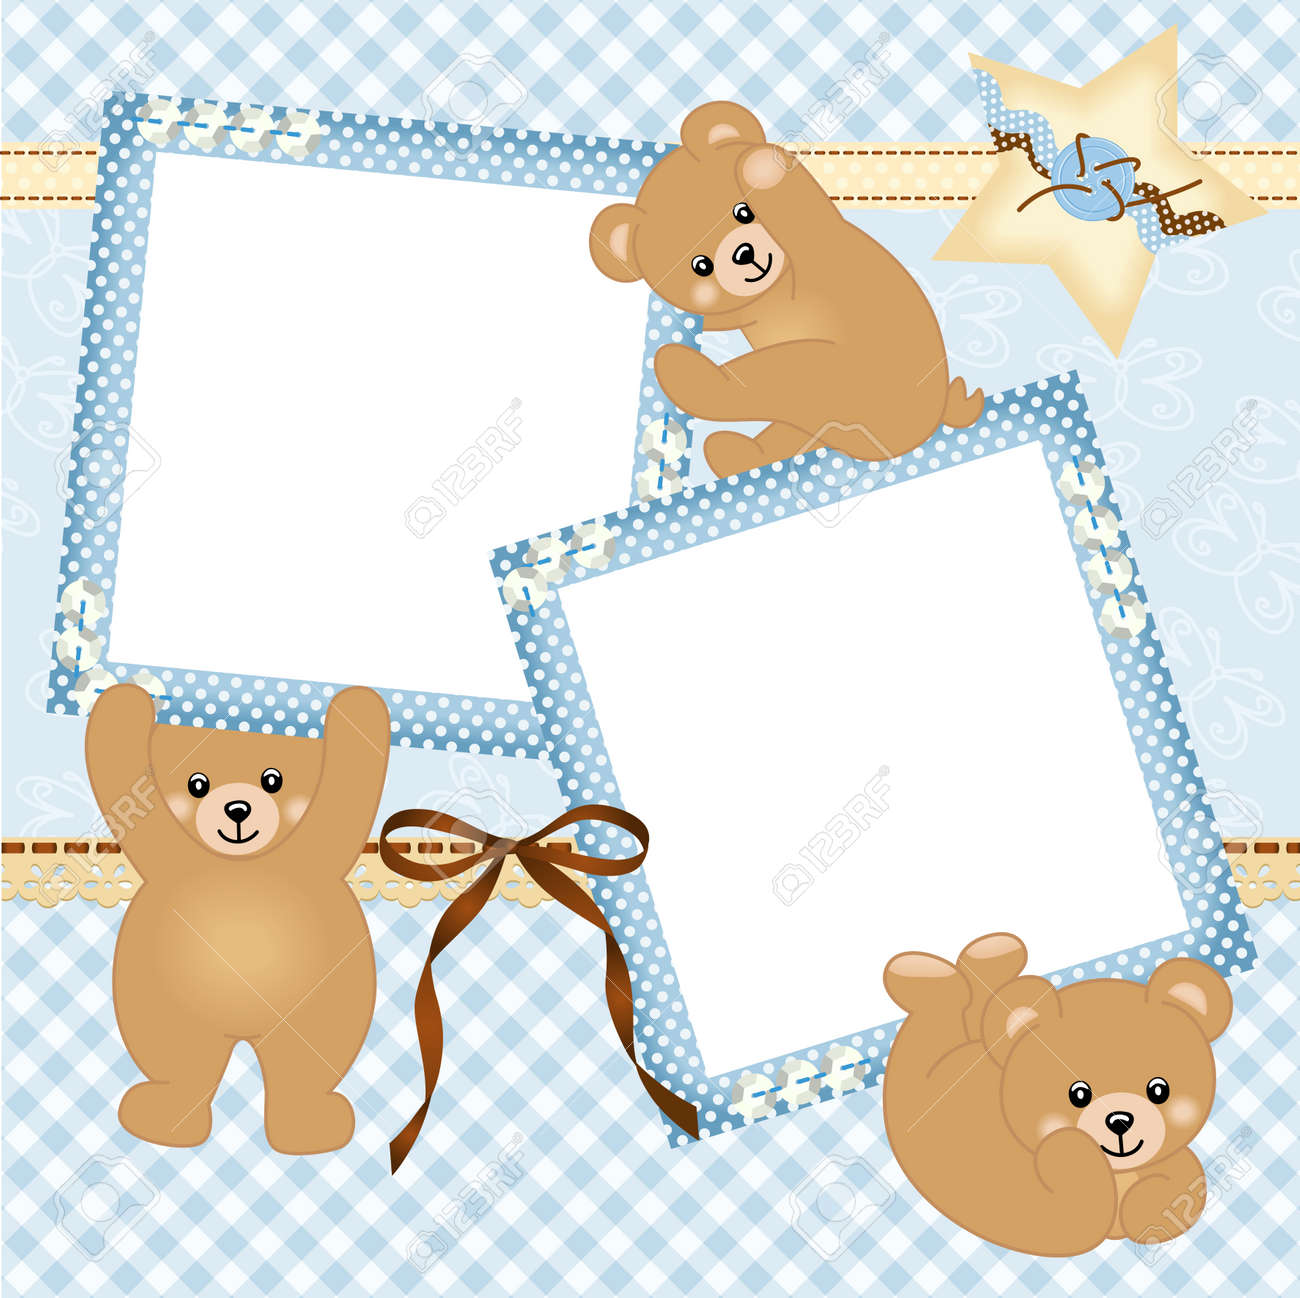 Baby Boy Photo Frame With Teddy Bear Royalty Free Cliparts, Vectors ...